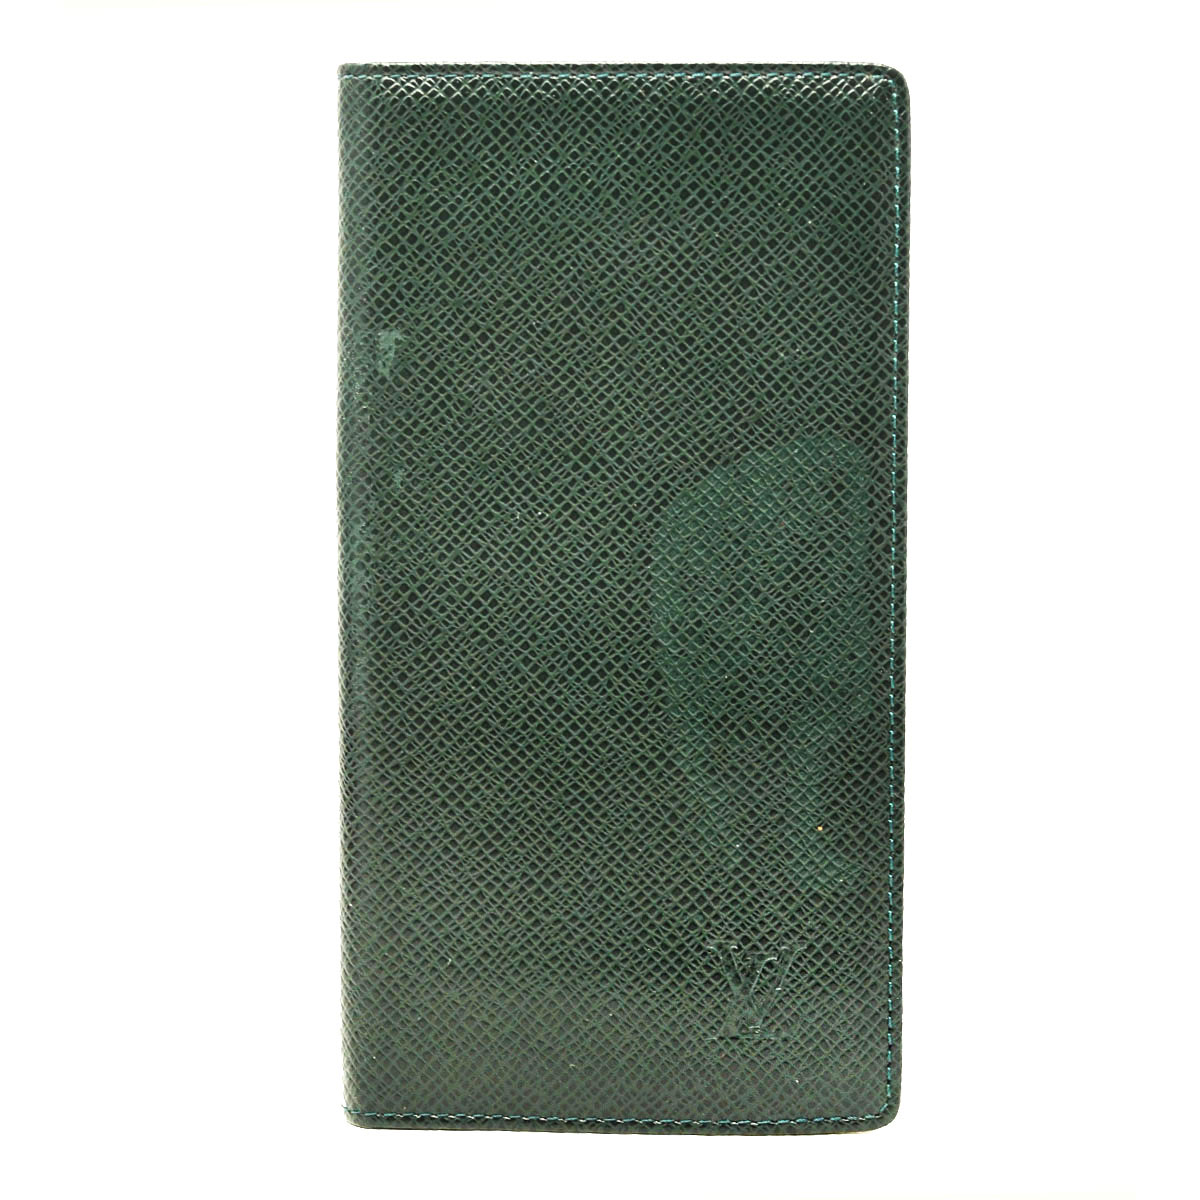 Louis Vuitton Green Taurillon Leather Address Book Wallet